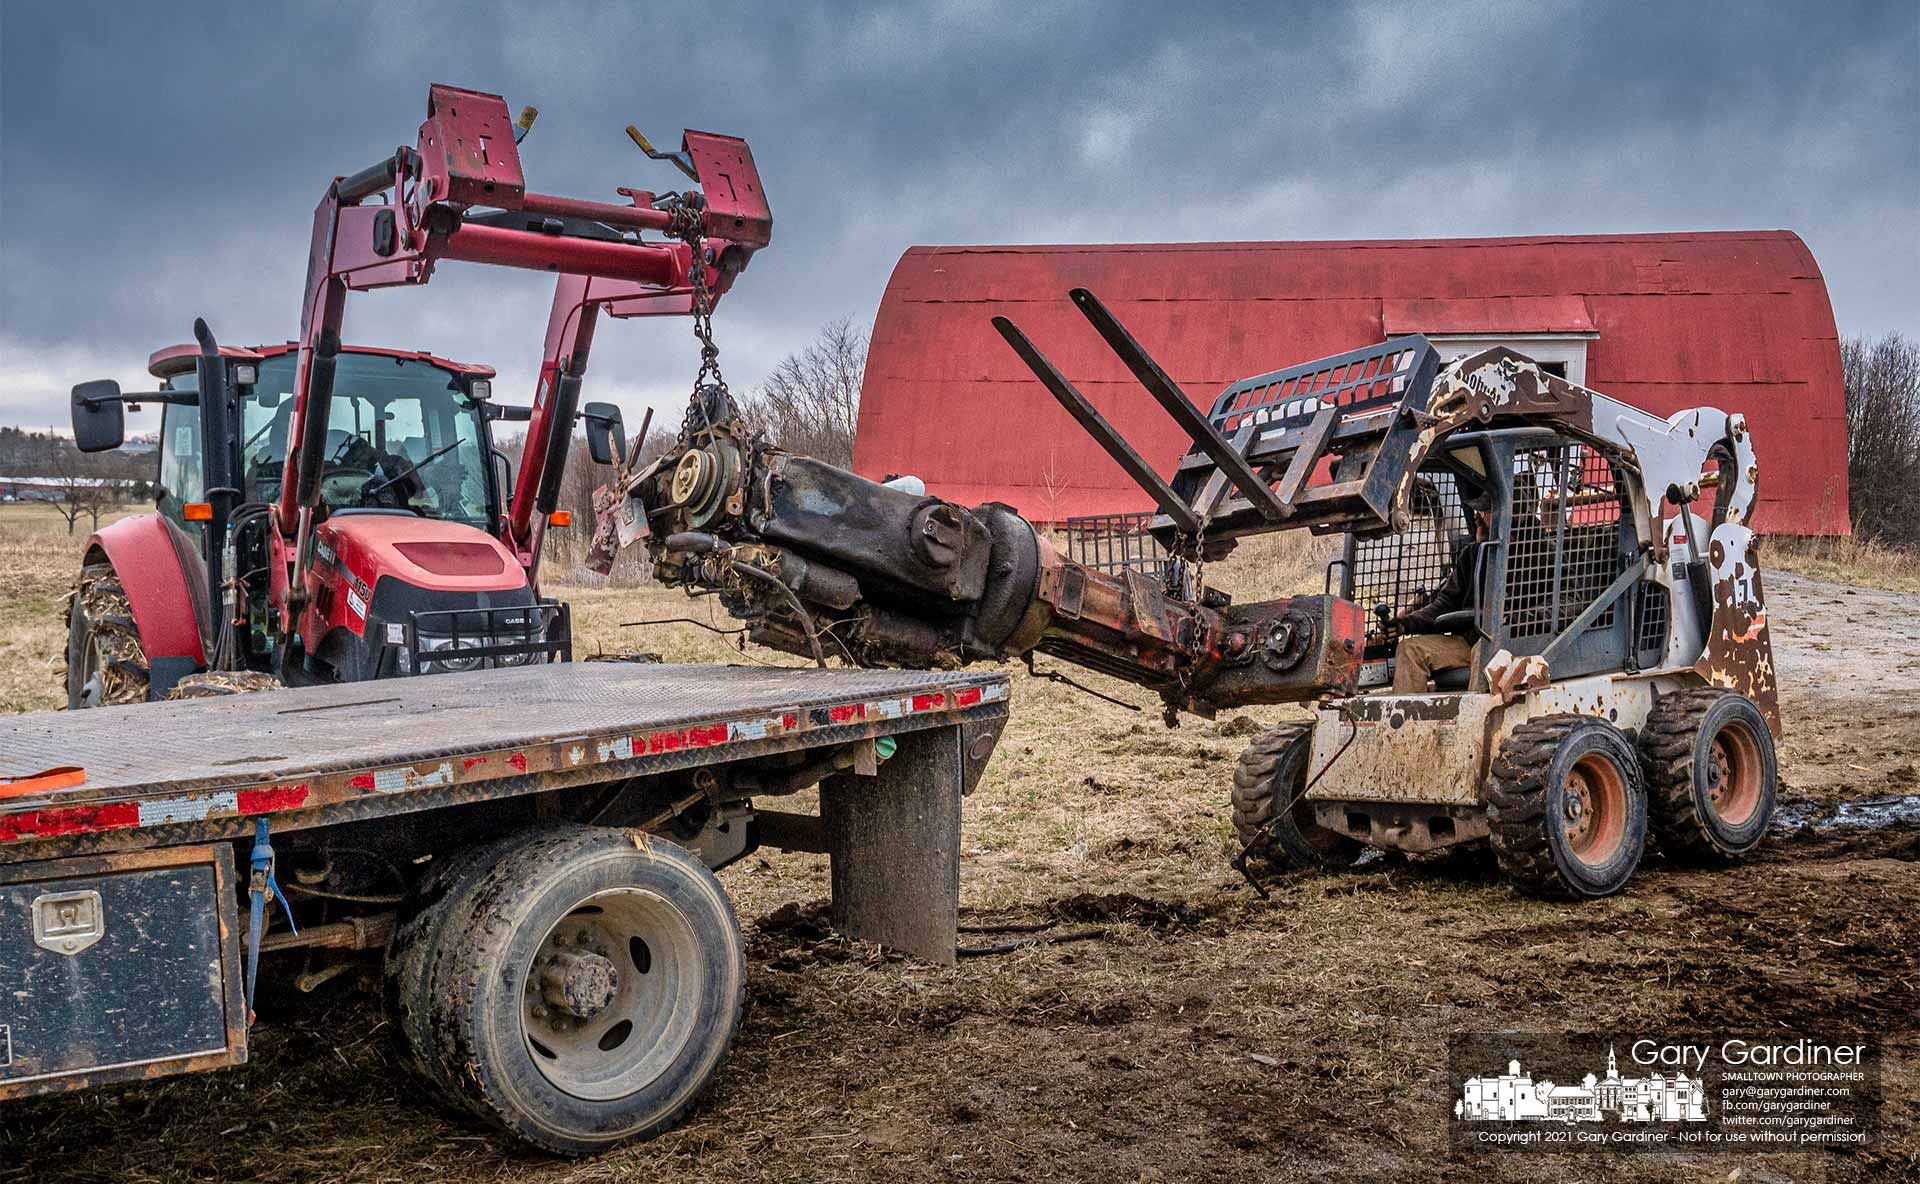 Using a tractor and a Bobcat, the GM engine and Oliver transmission from a Minneapolis-Moline A4T-1600 1970s-era tractor from the Braun Farm is lifted on a truck bed for transport to a scrap yard. My Final Photo for March 15, 2021.